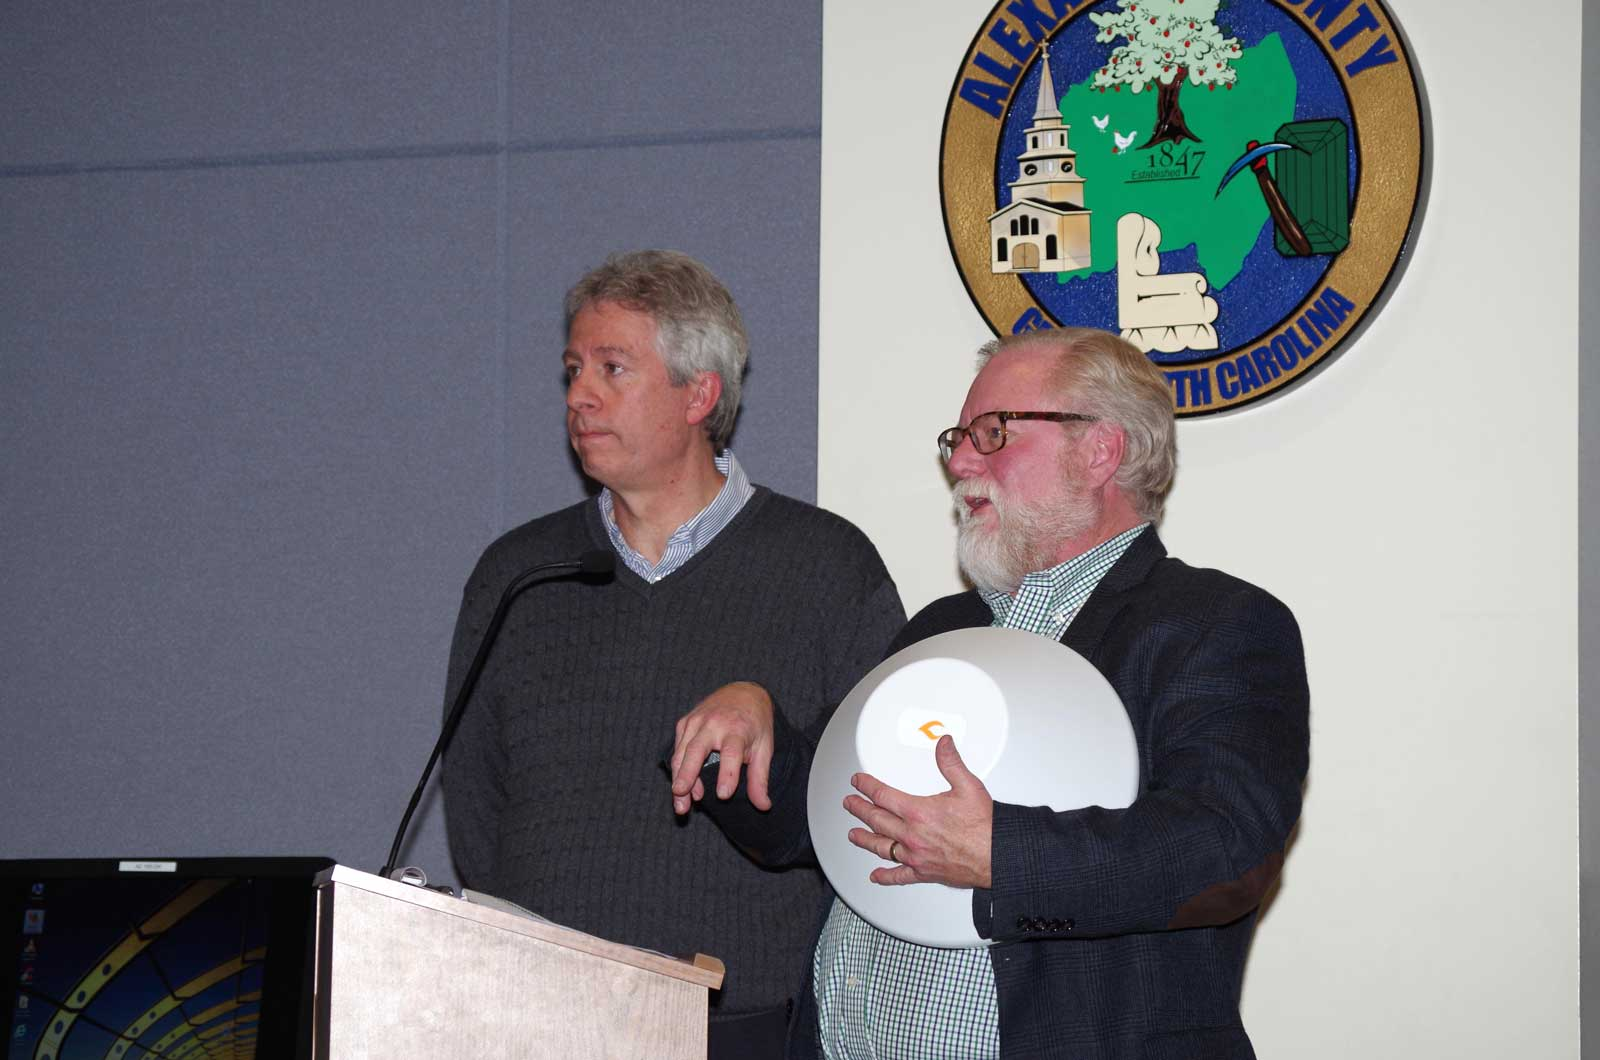 Alan Fitzpatrick (left), CEO of Open Broadband, LLC and Kent Winrich (right), CTO  of Open Broadband, LLC